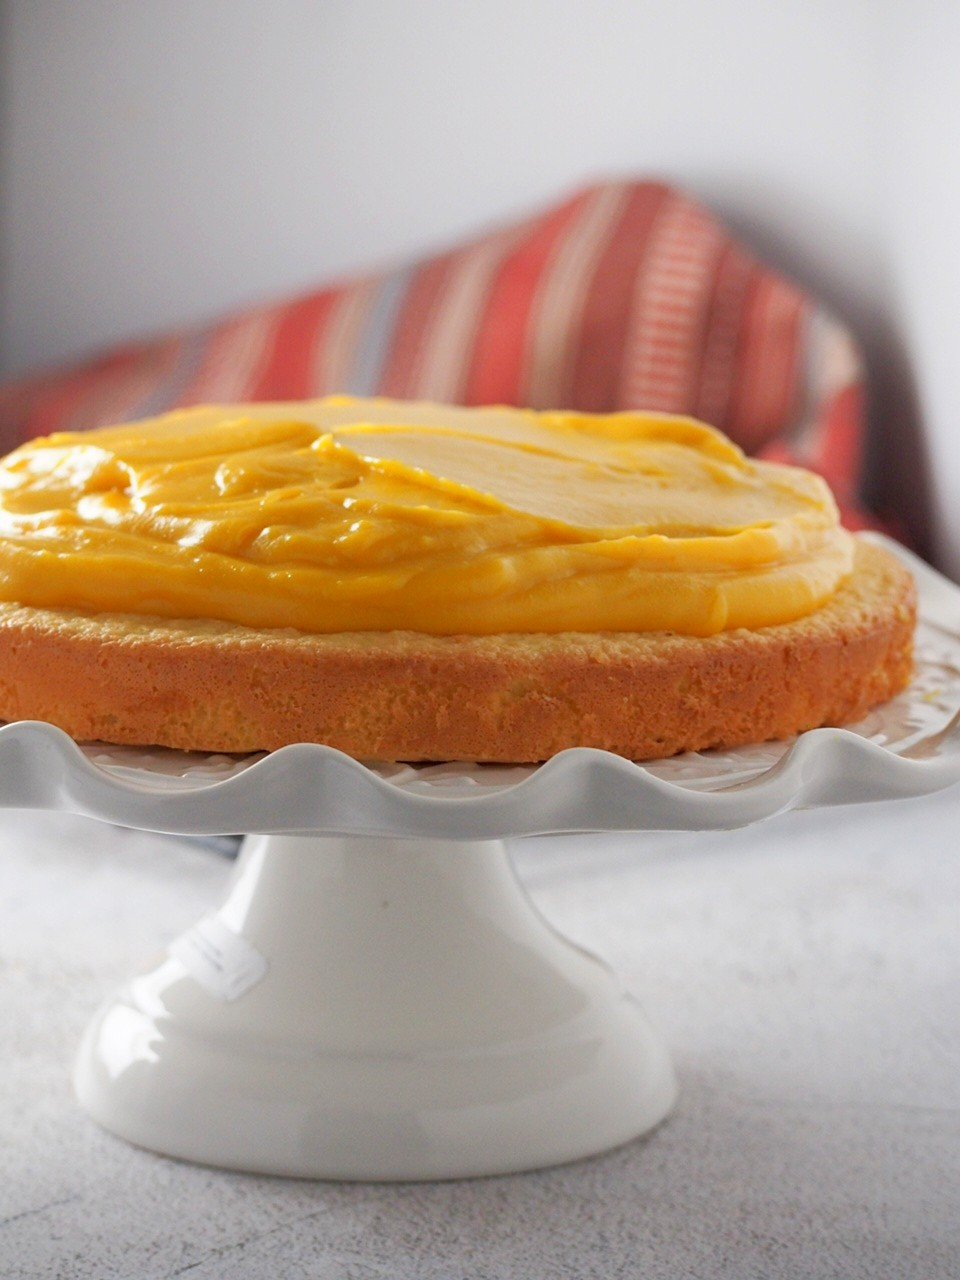 Mango Cream cake piled on top of a sponge layer.